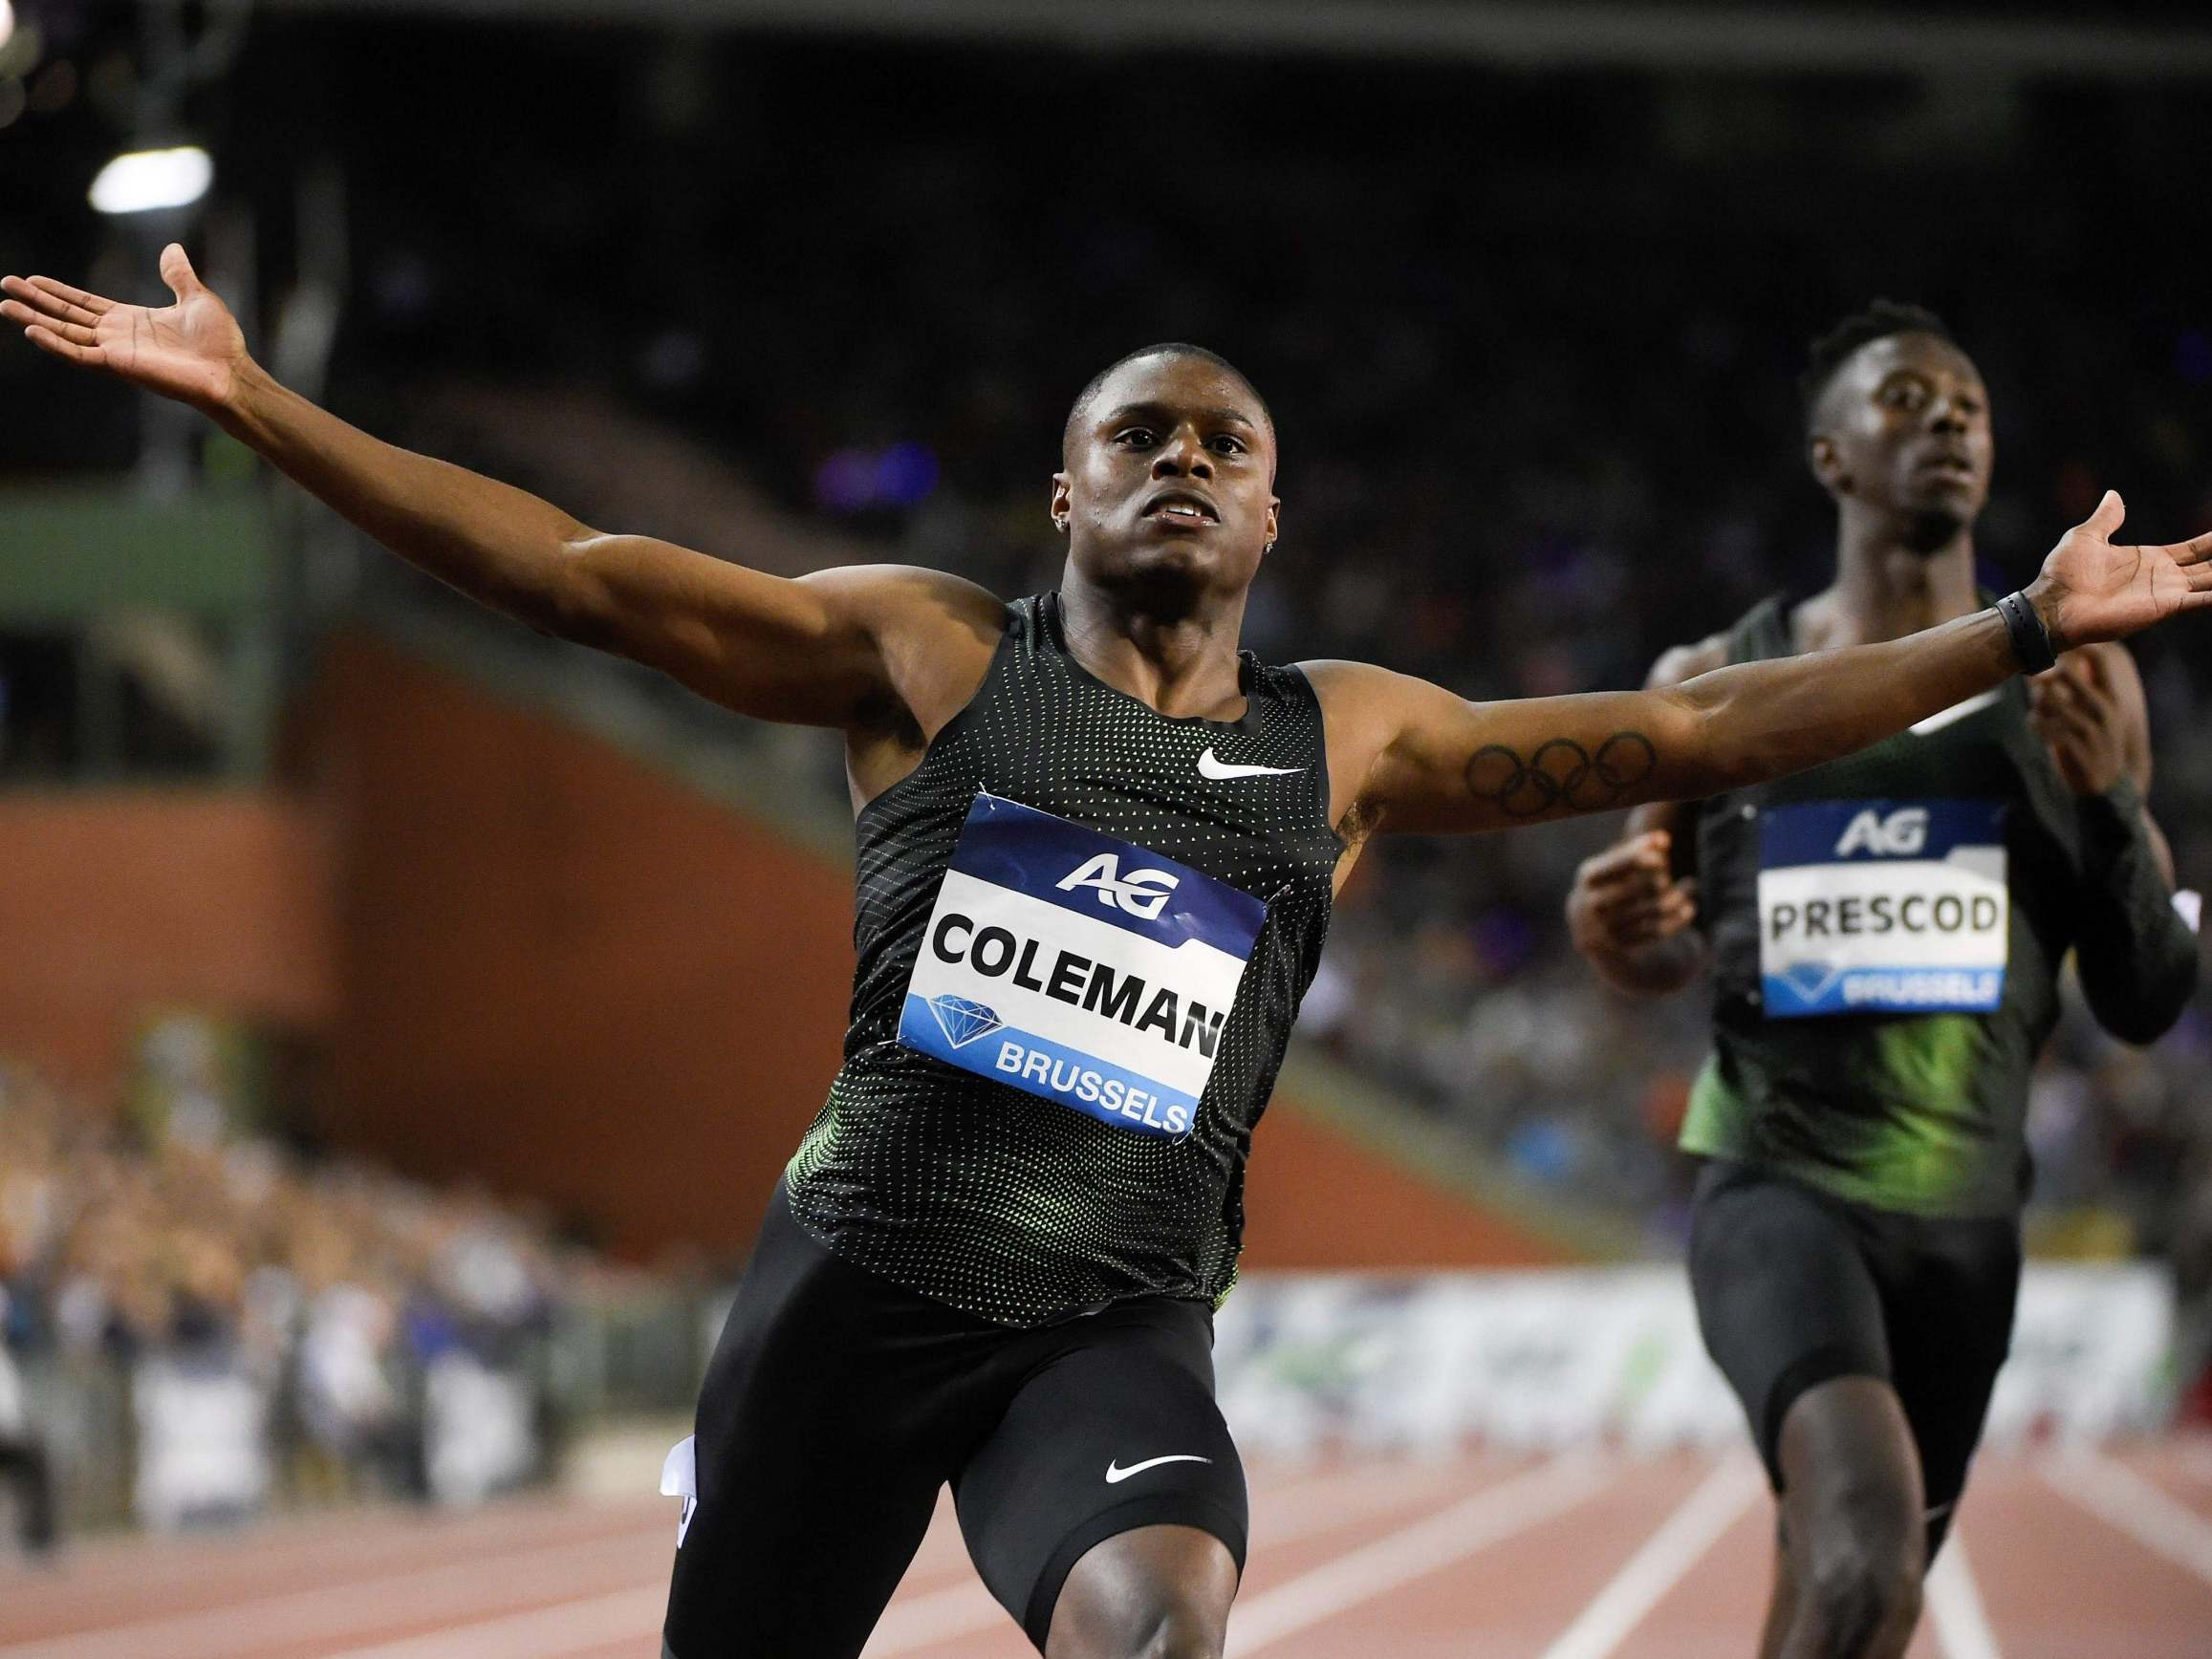 Christian Coleman: World's fastest man could face Olympics ban over 'three missed drugs tests'